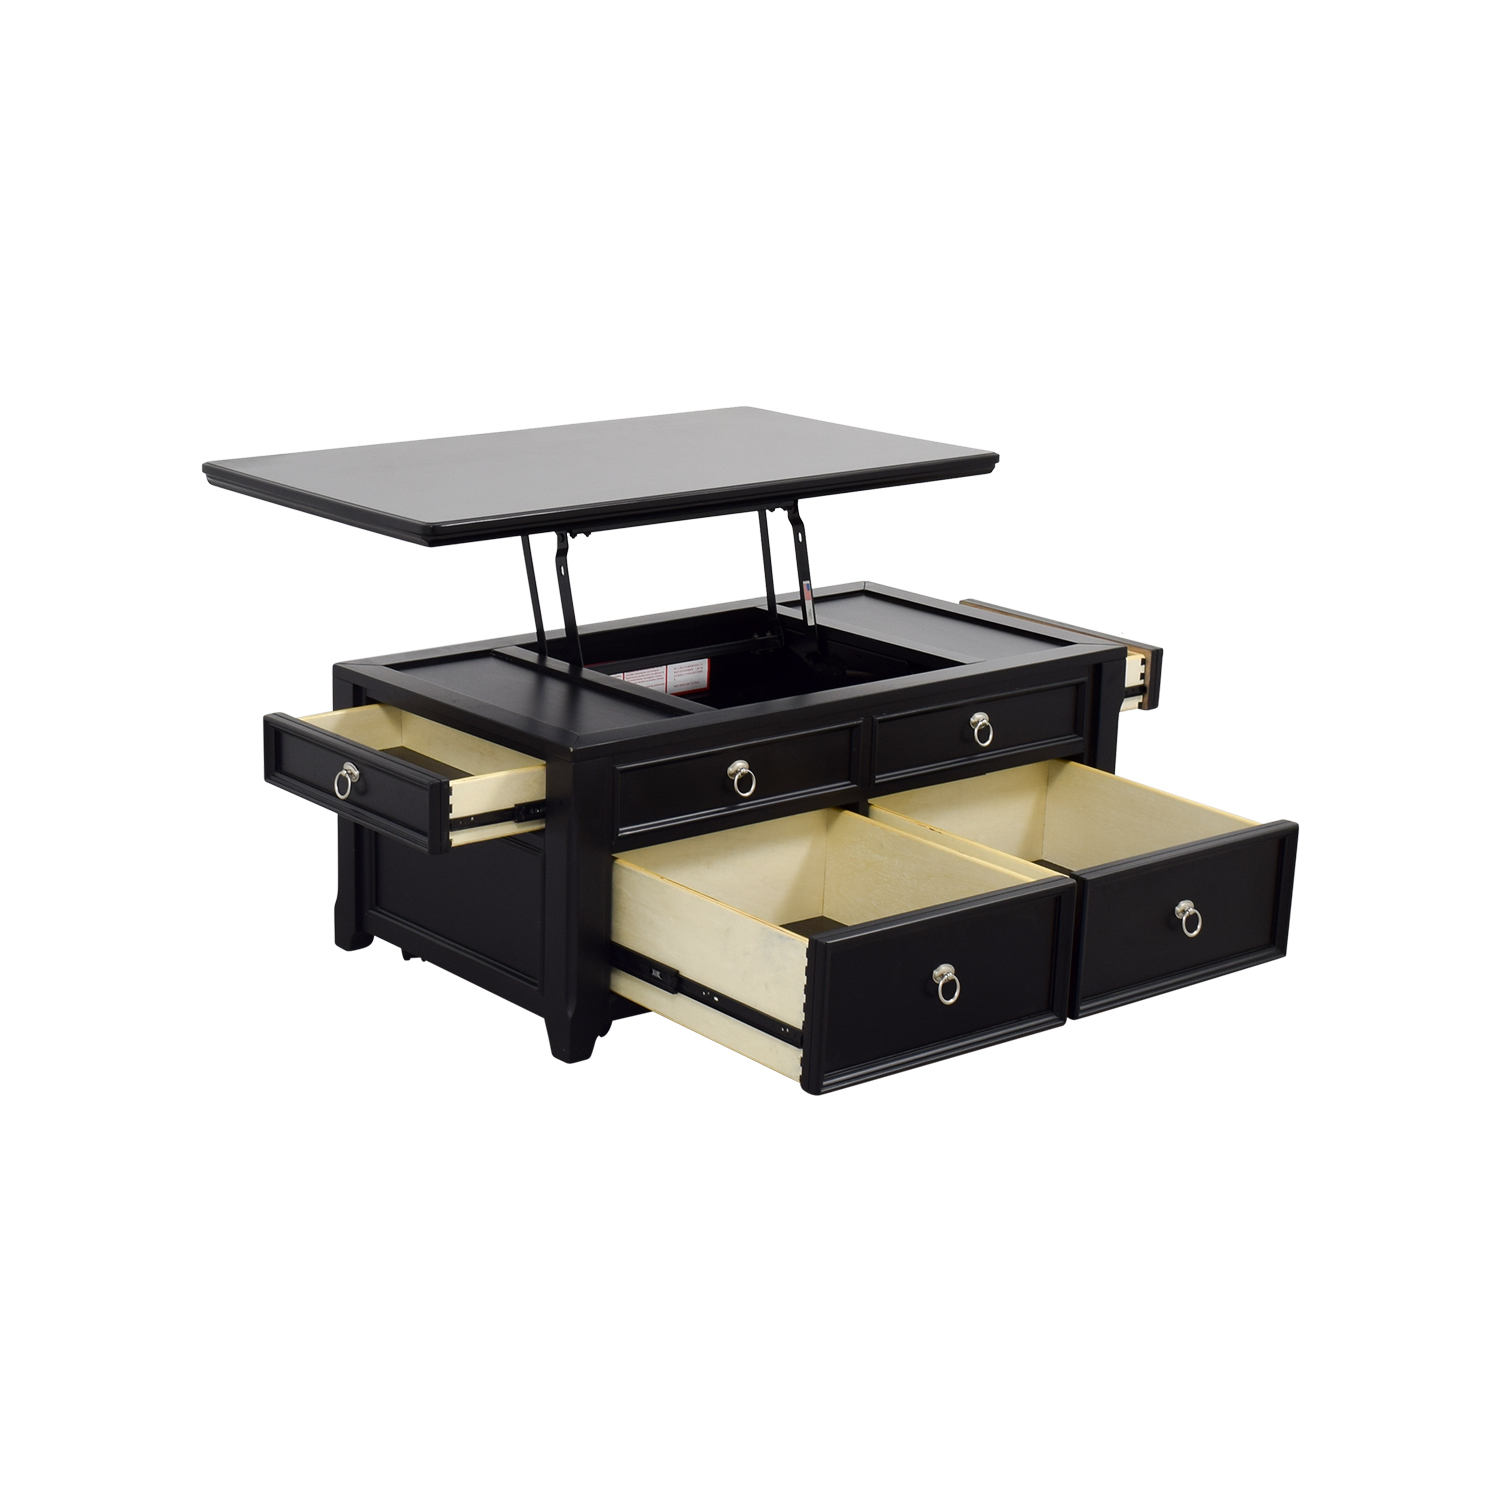 61 off ashley furniture ashley furniture black lift top coffee table tables Black lift top coffee tables